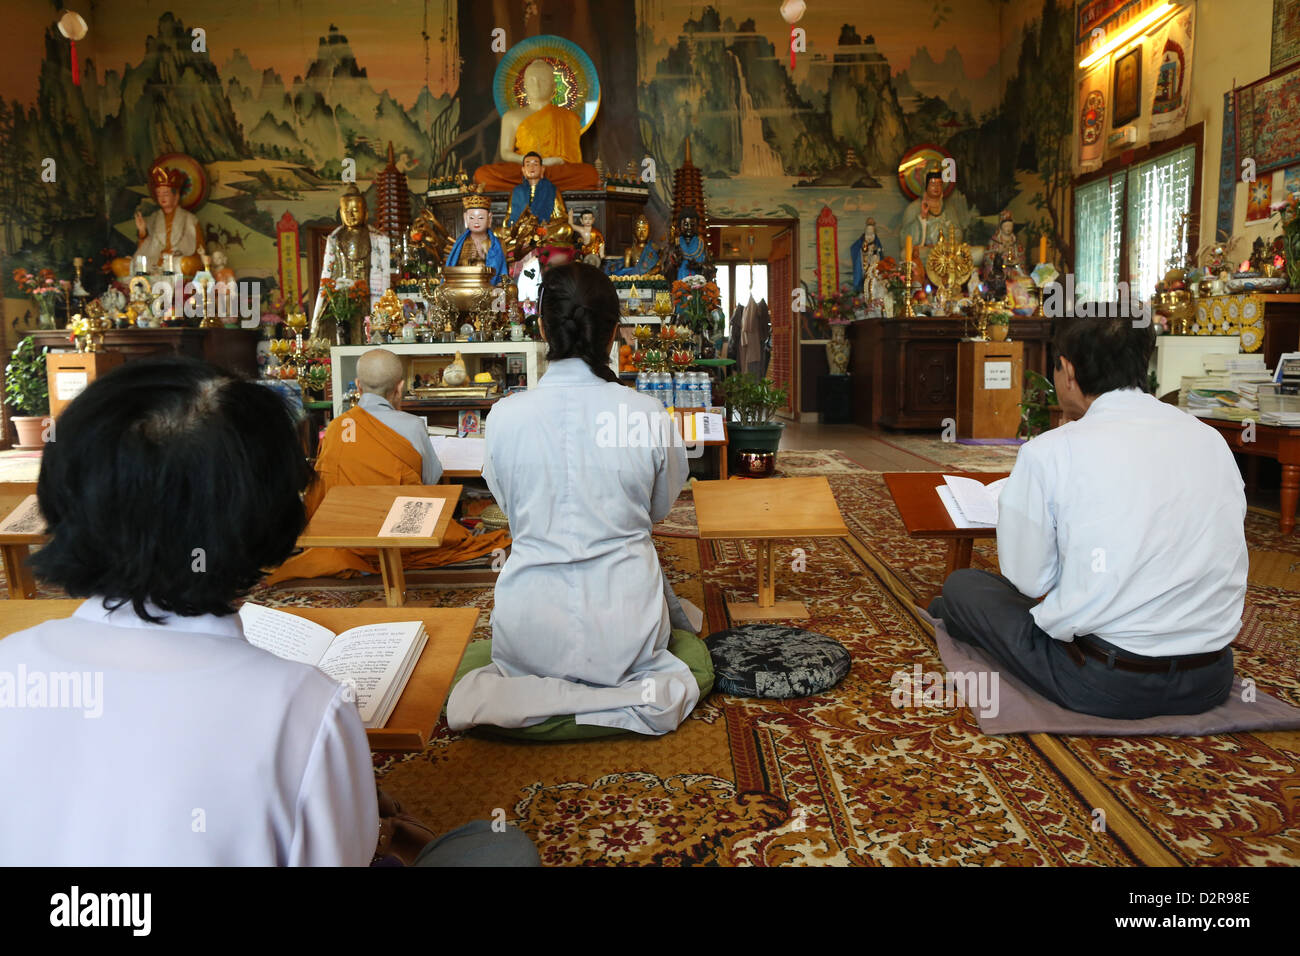 Ceremony in Tu An Buddhist temple, Saint-Pierre-en-Faucigny, Haute-Savoie, France, Europe - Stock Image